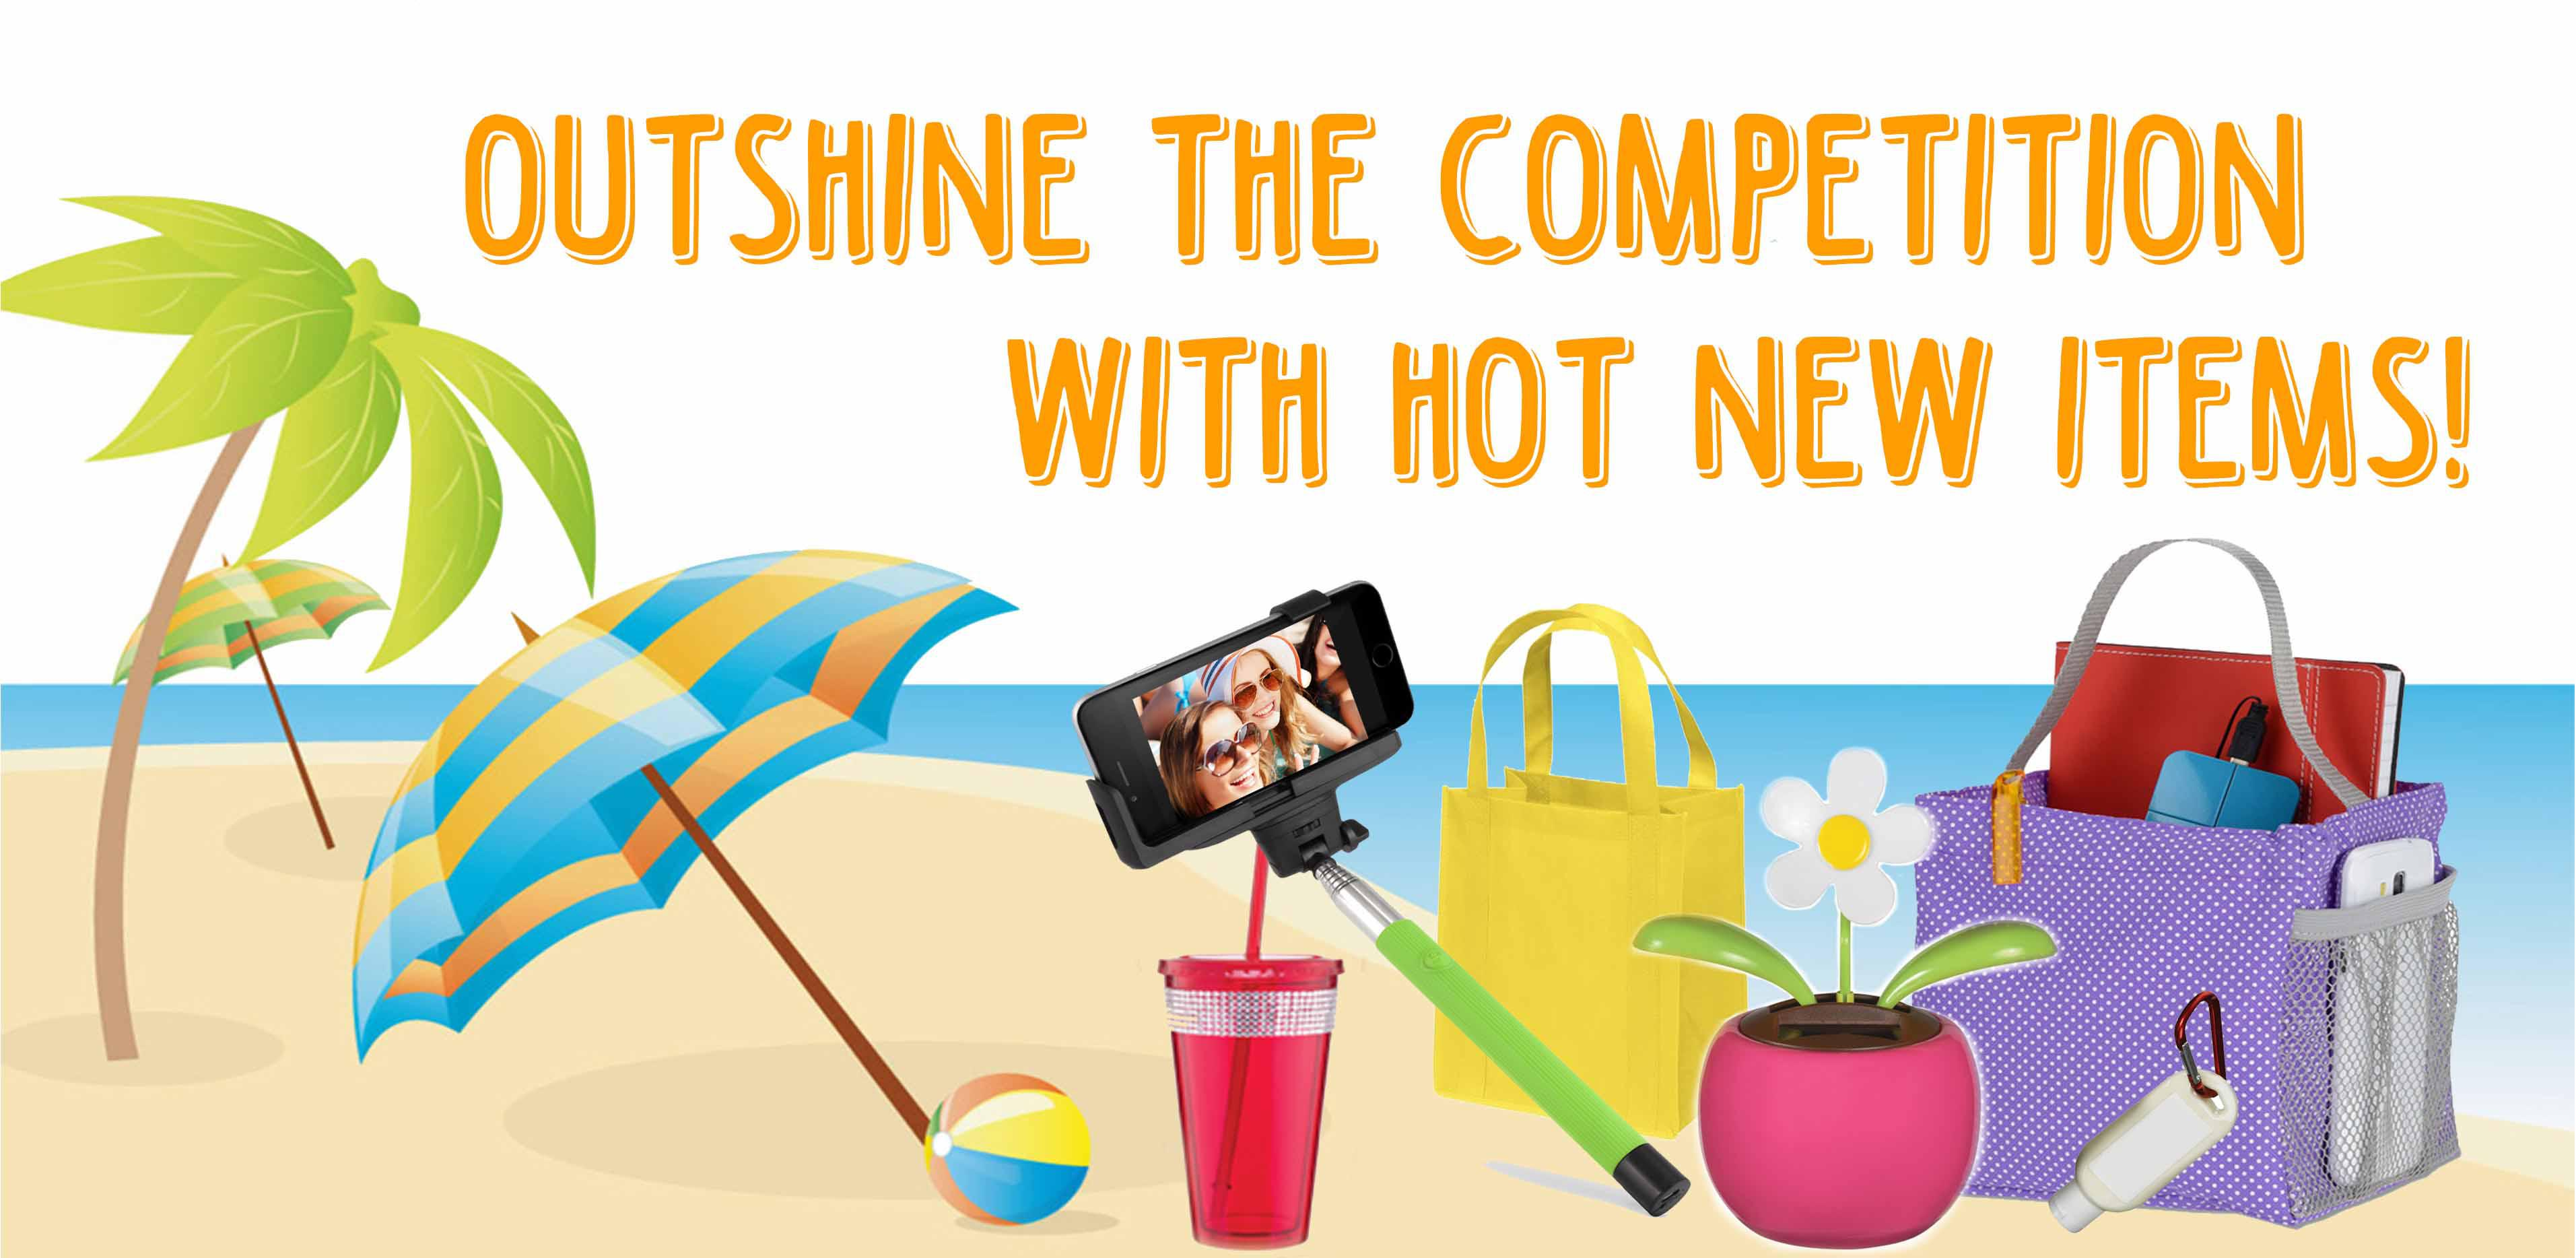 Promotional Products in Tampa FL - Marketing Products in Orlando FL - Outshine the Competition with New Items